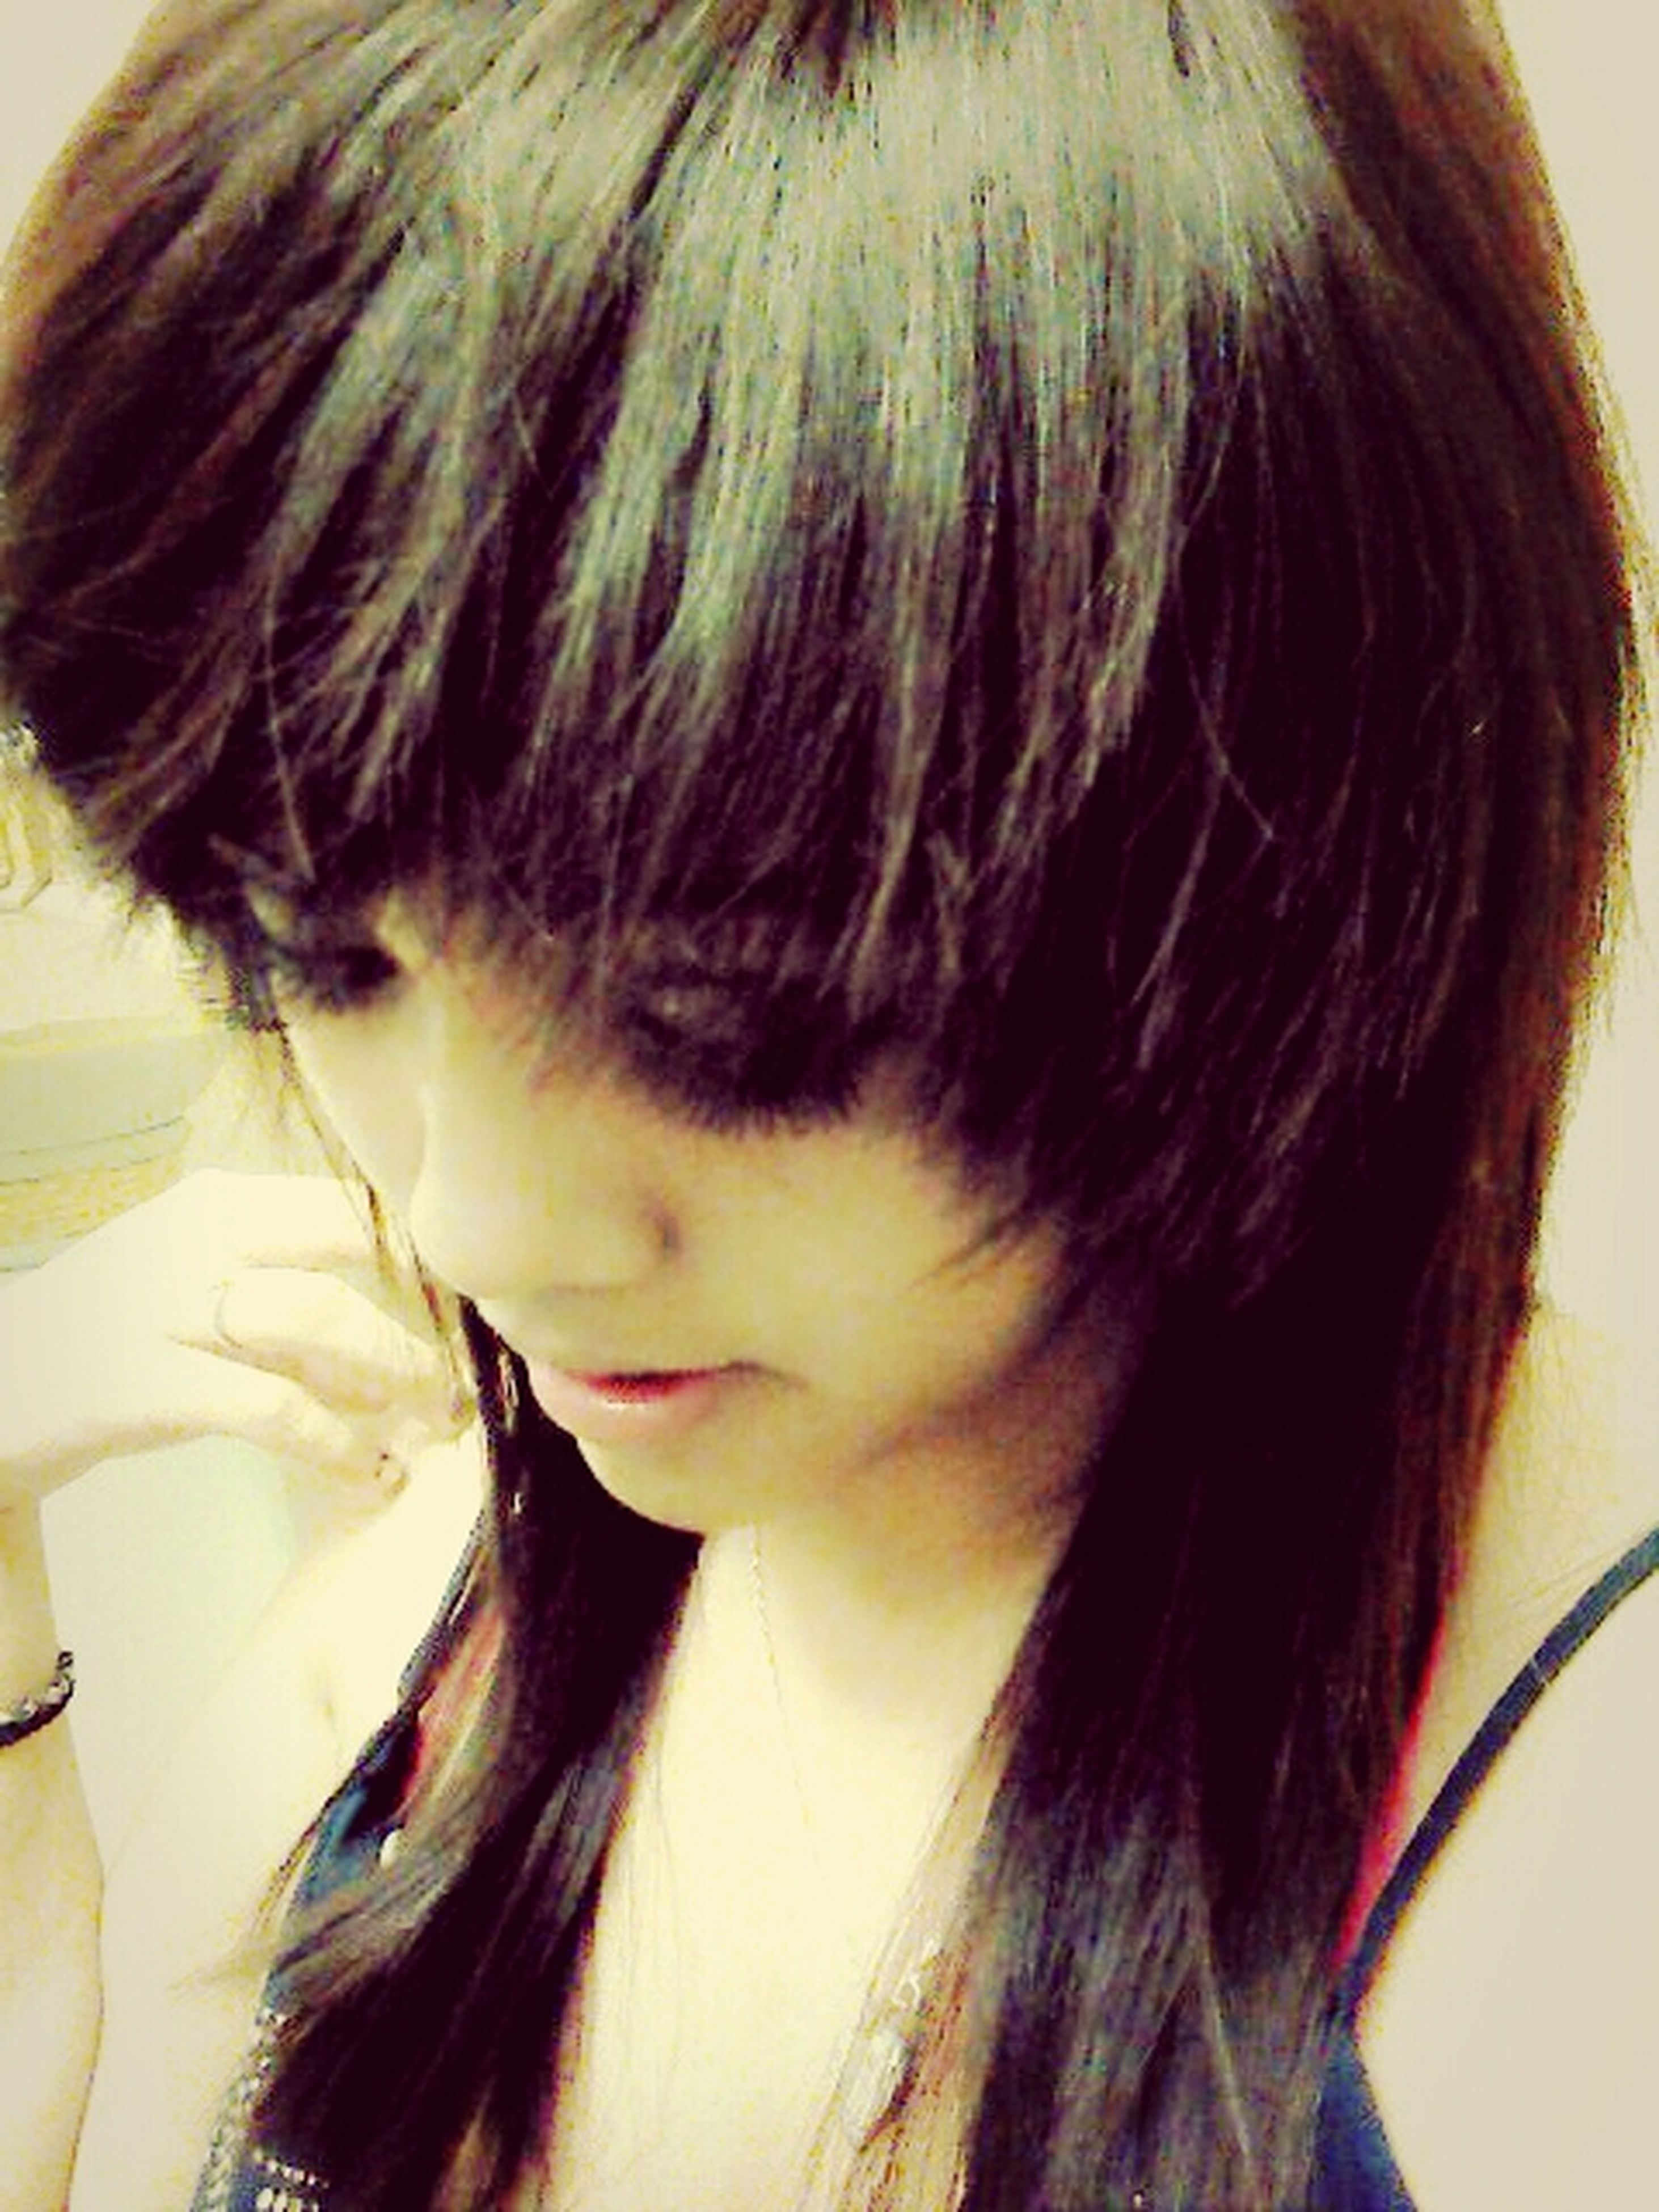 headshot, long hair, young adult, lifestyles, young women, close-up, person, human hair, indoors, leisure activity, human face, black hair, brown hair, head and shoulders, looking at camera, front view